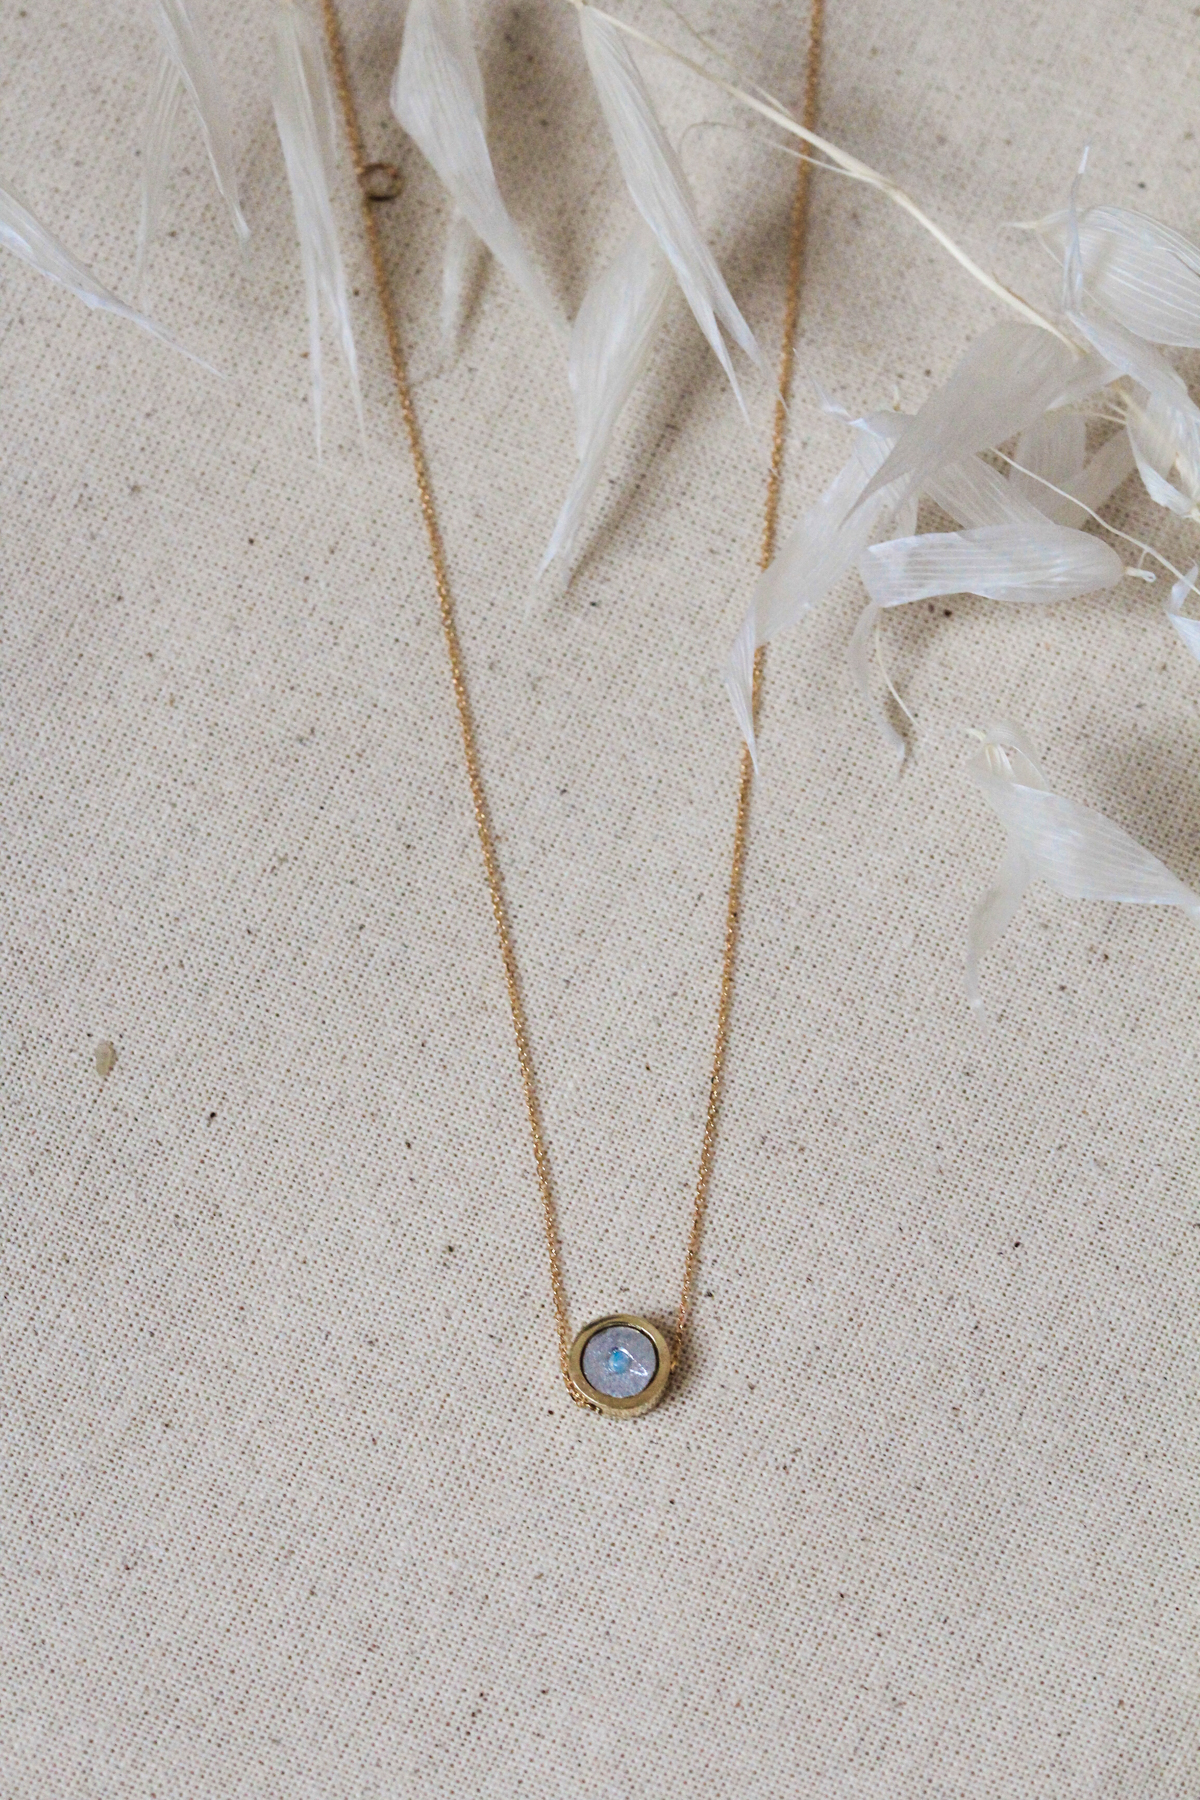 Collier long opale or 14kt